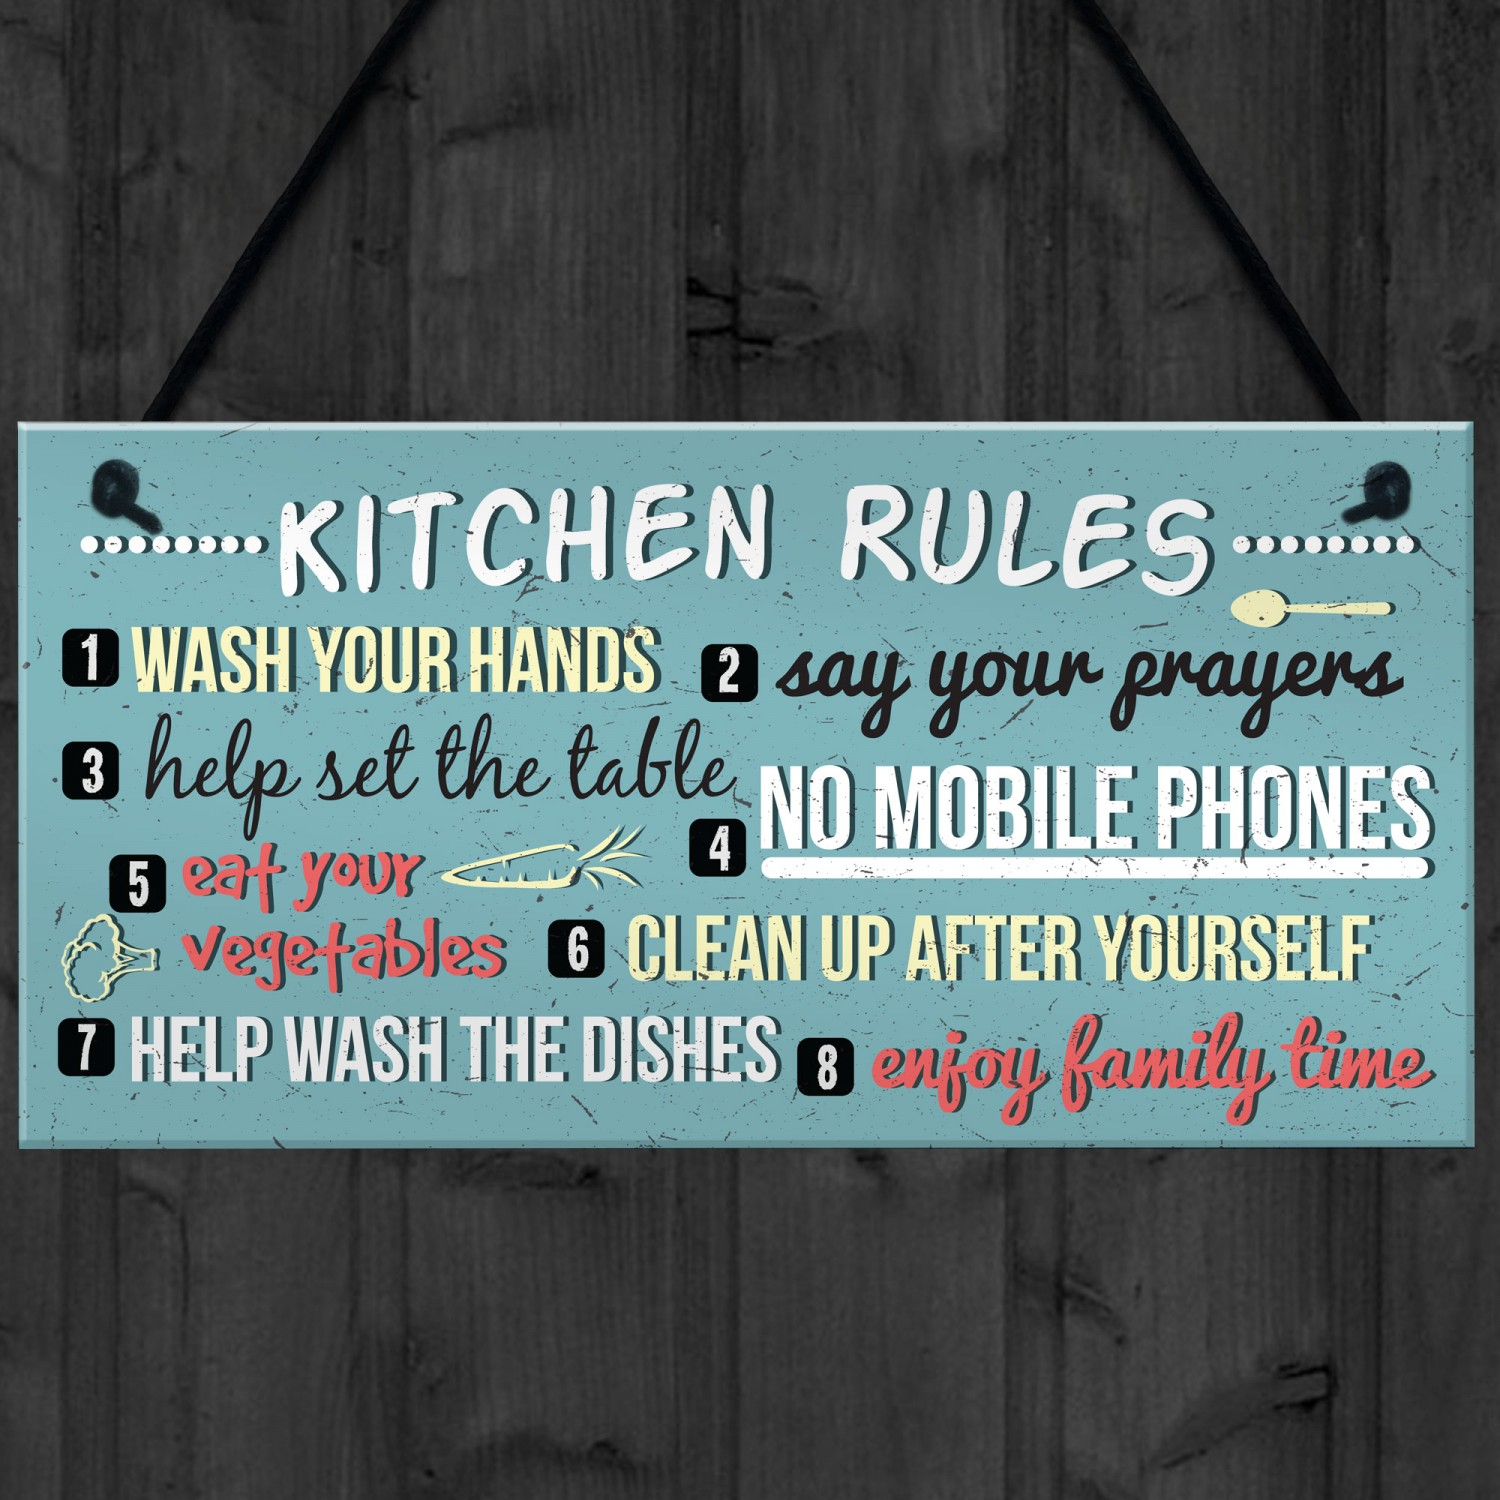 Funny Rustic Kitchen House Rules Hanging Wall Plaque Sign Gift